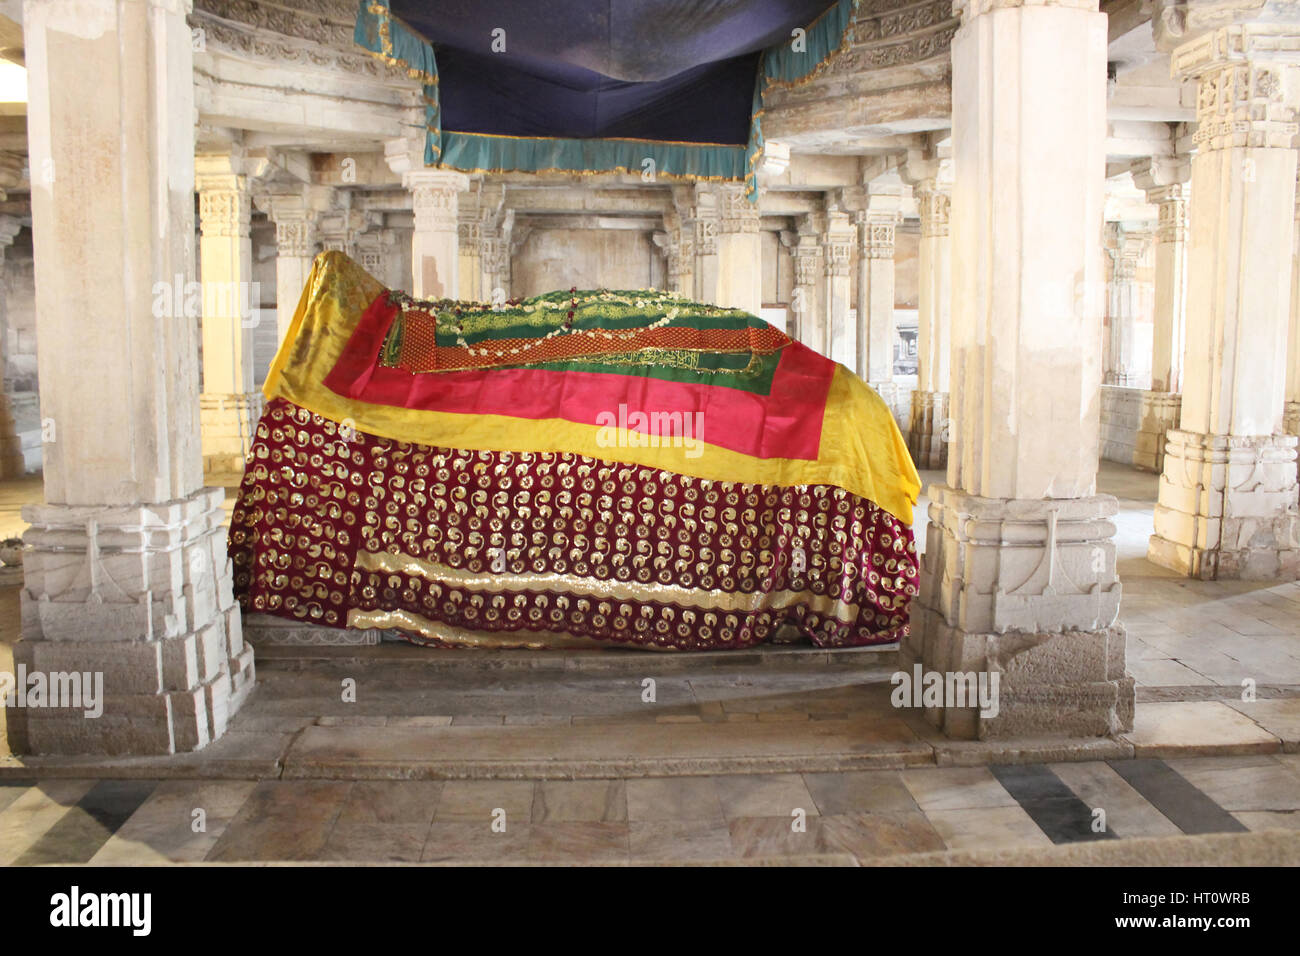 Tombs of Mahmud Begada, and of his son Saltan Muzaffar II, and the west, the tomb of Rajbai, Muzaffar's queen. - Stock Image